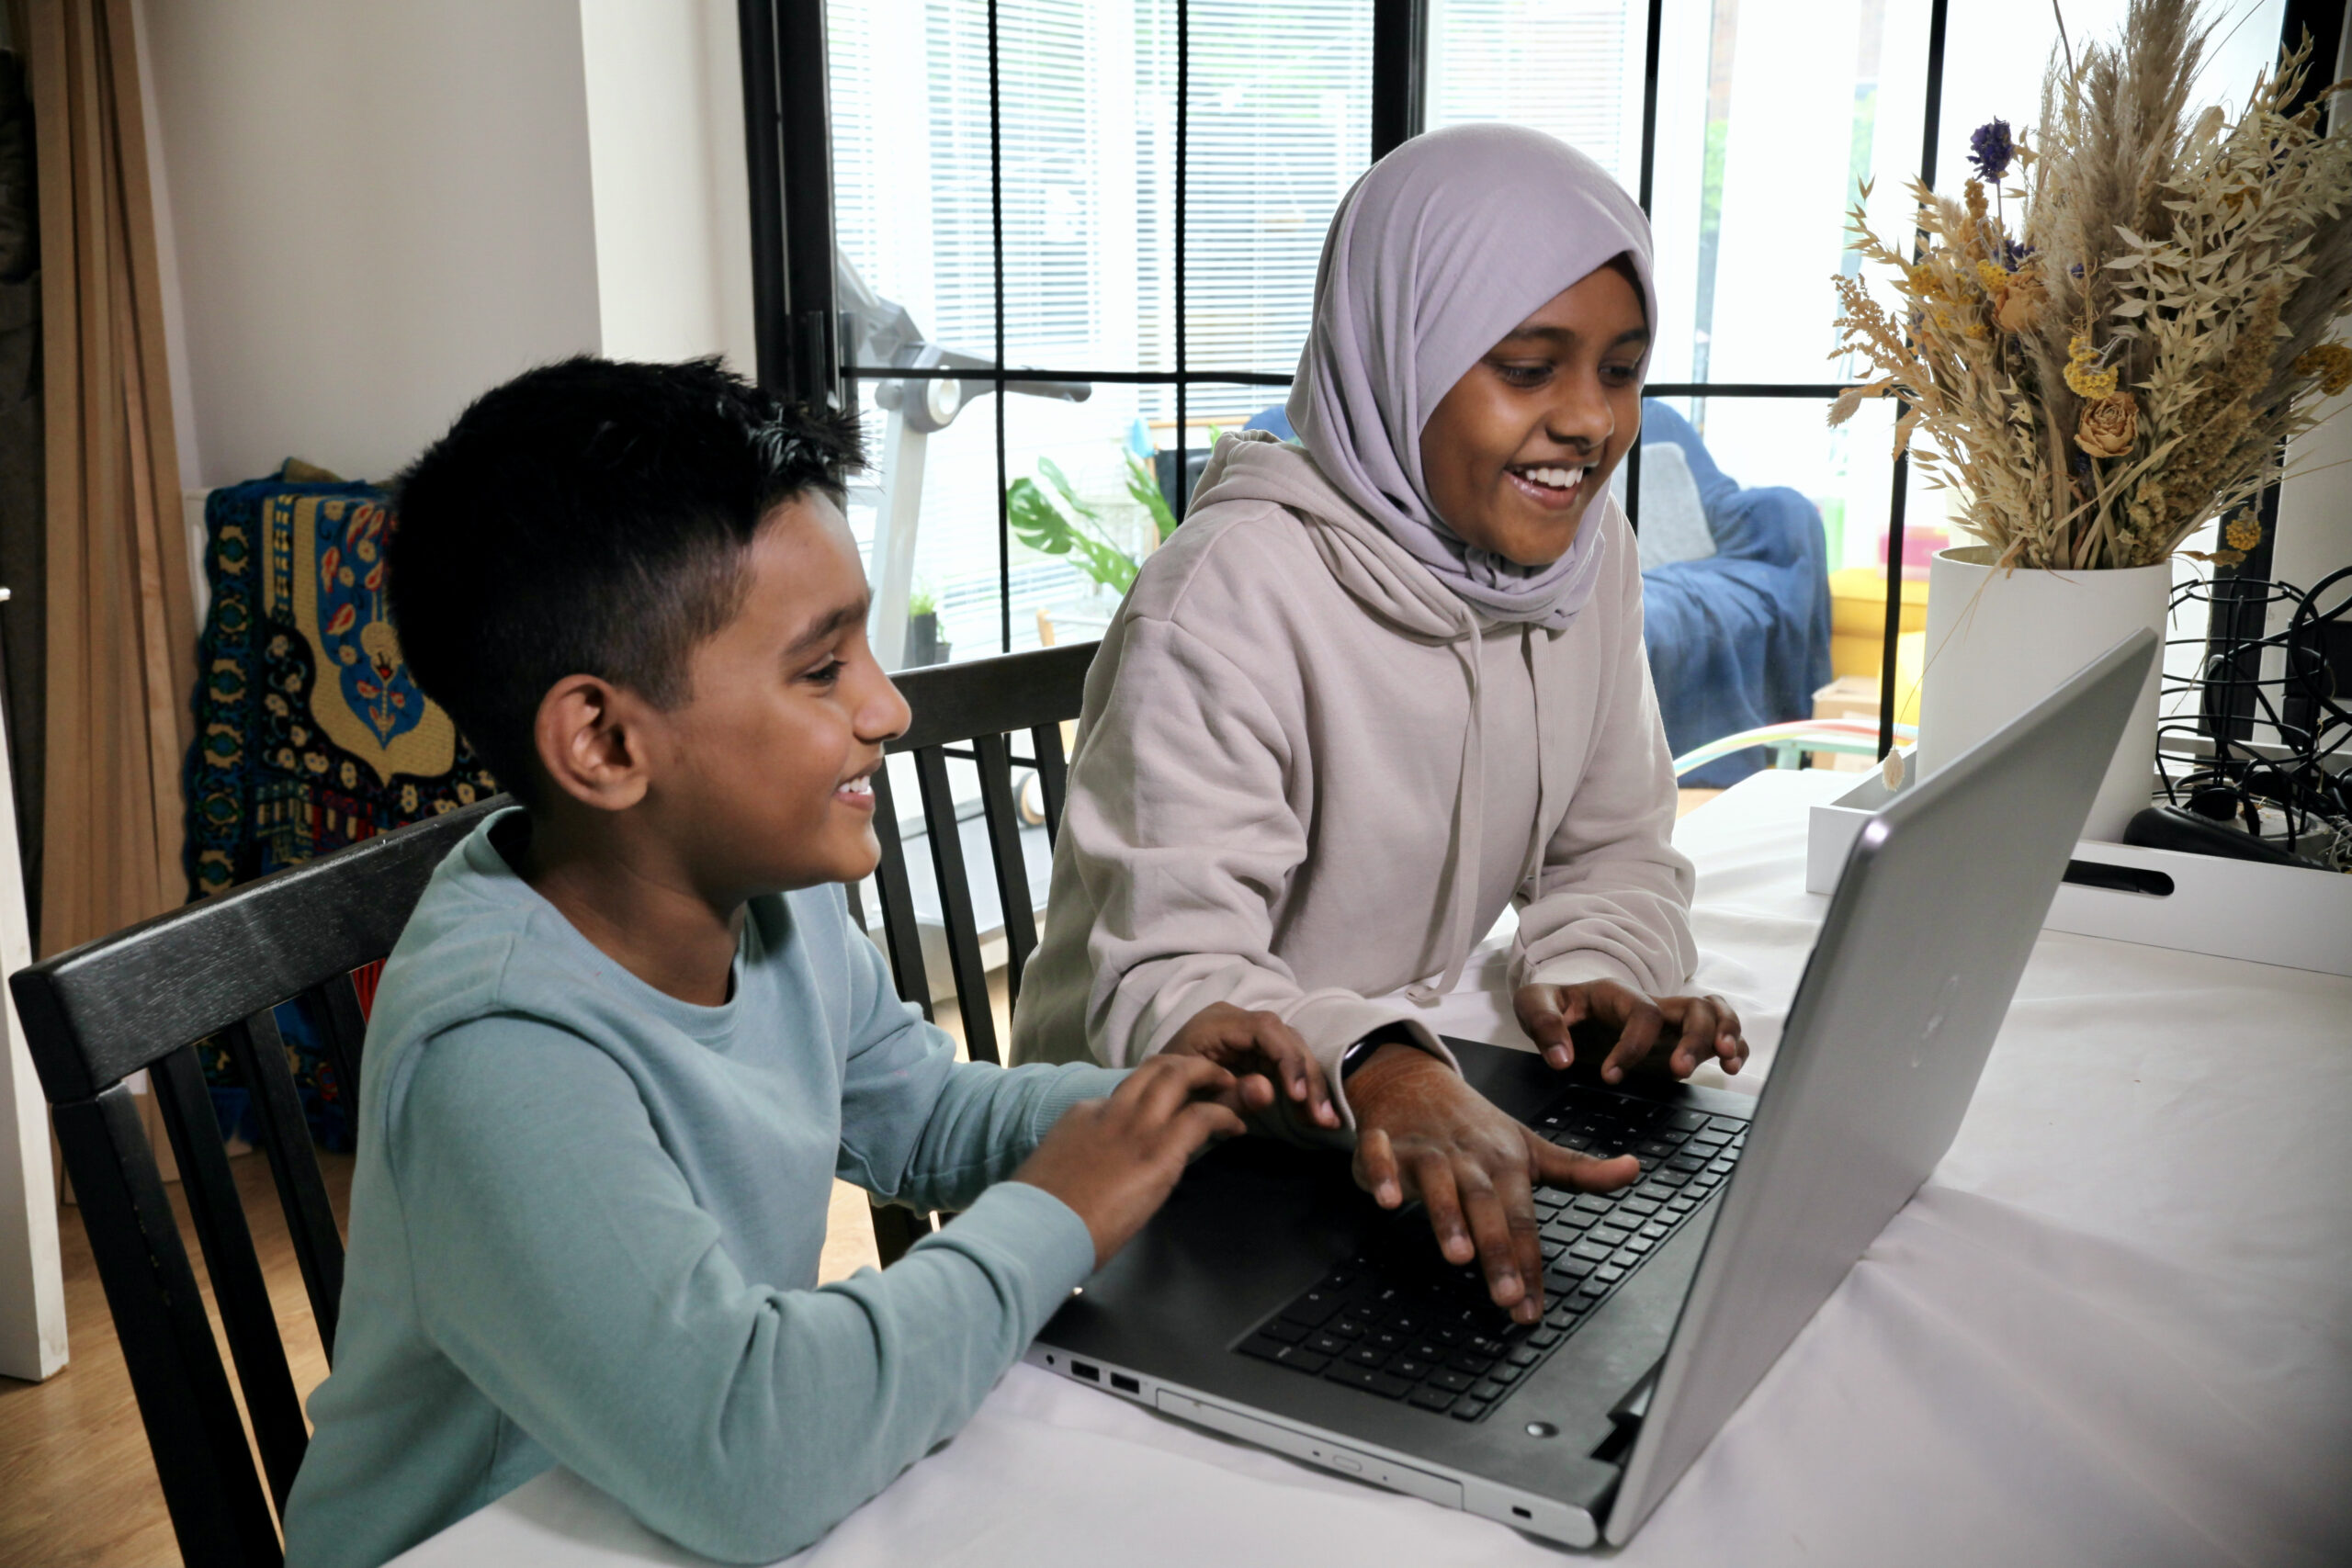 A girl and boy smiling while doing digital making at a laptop